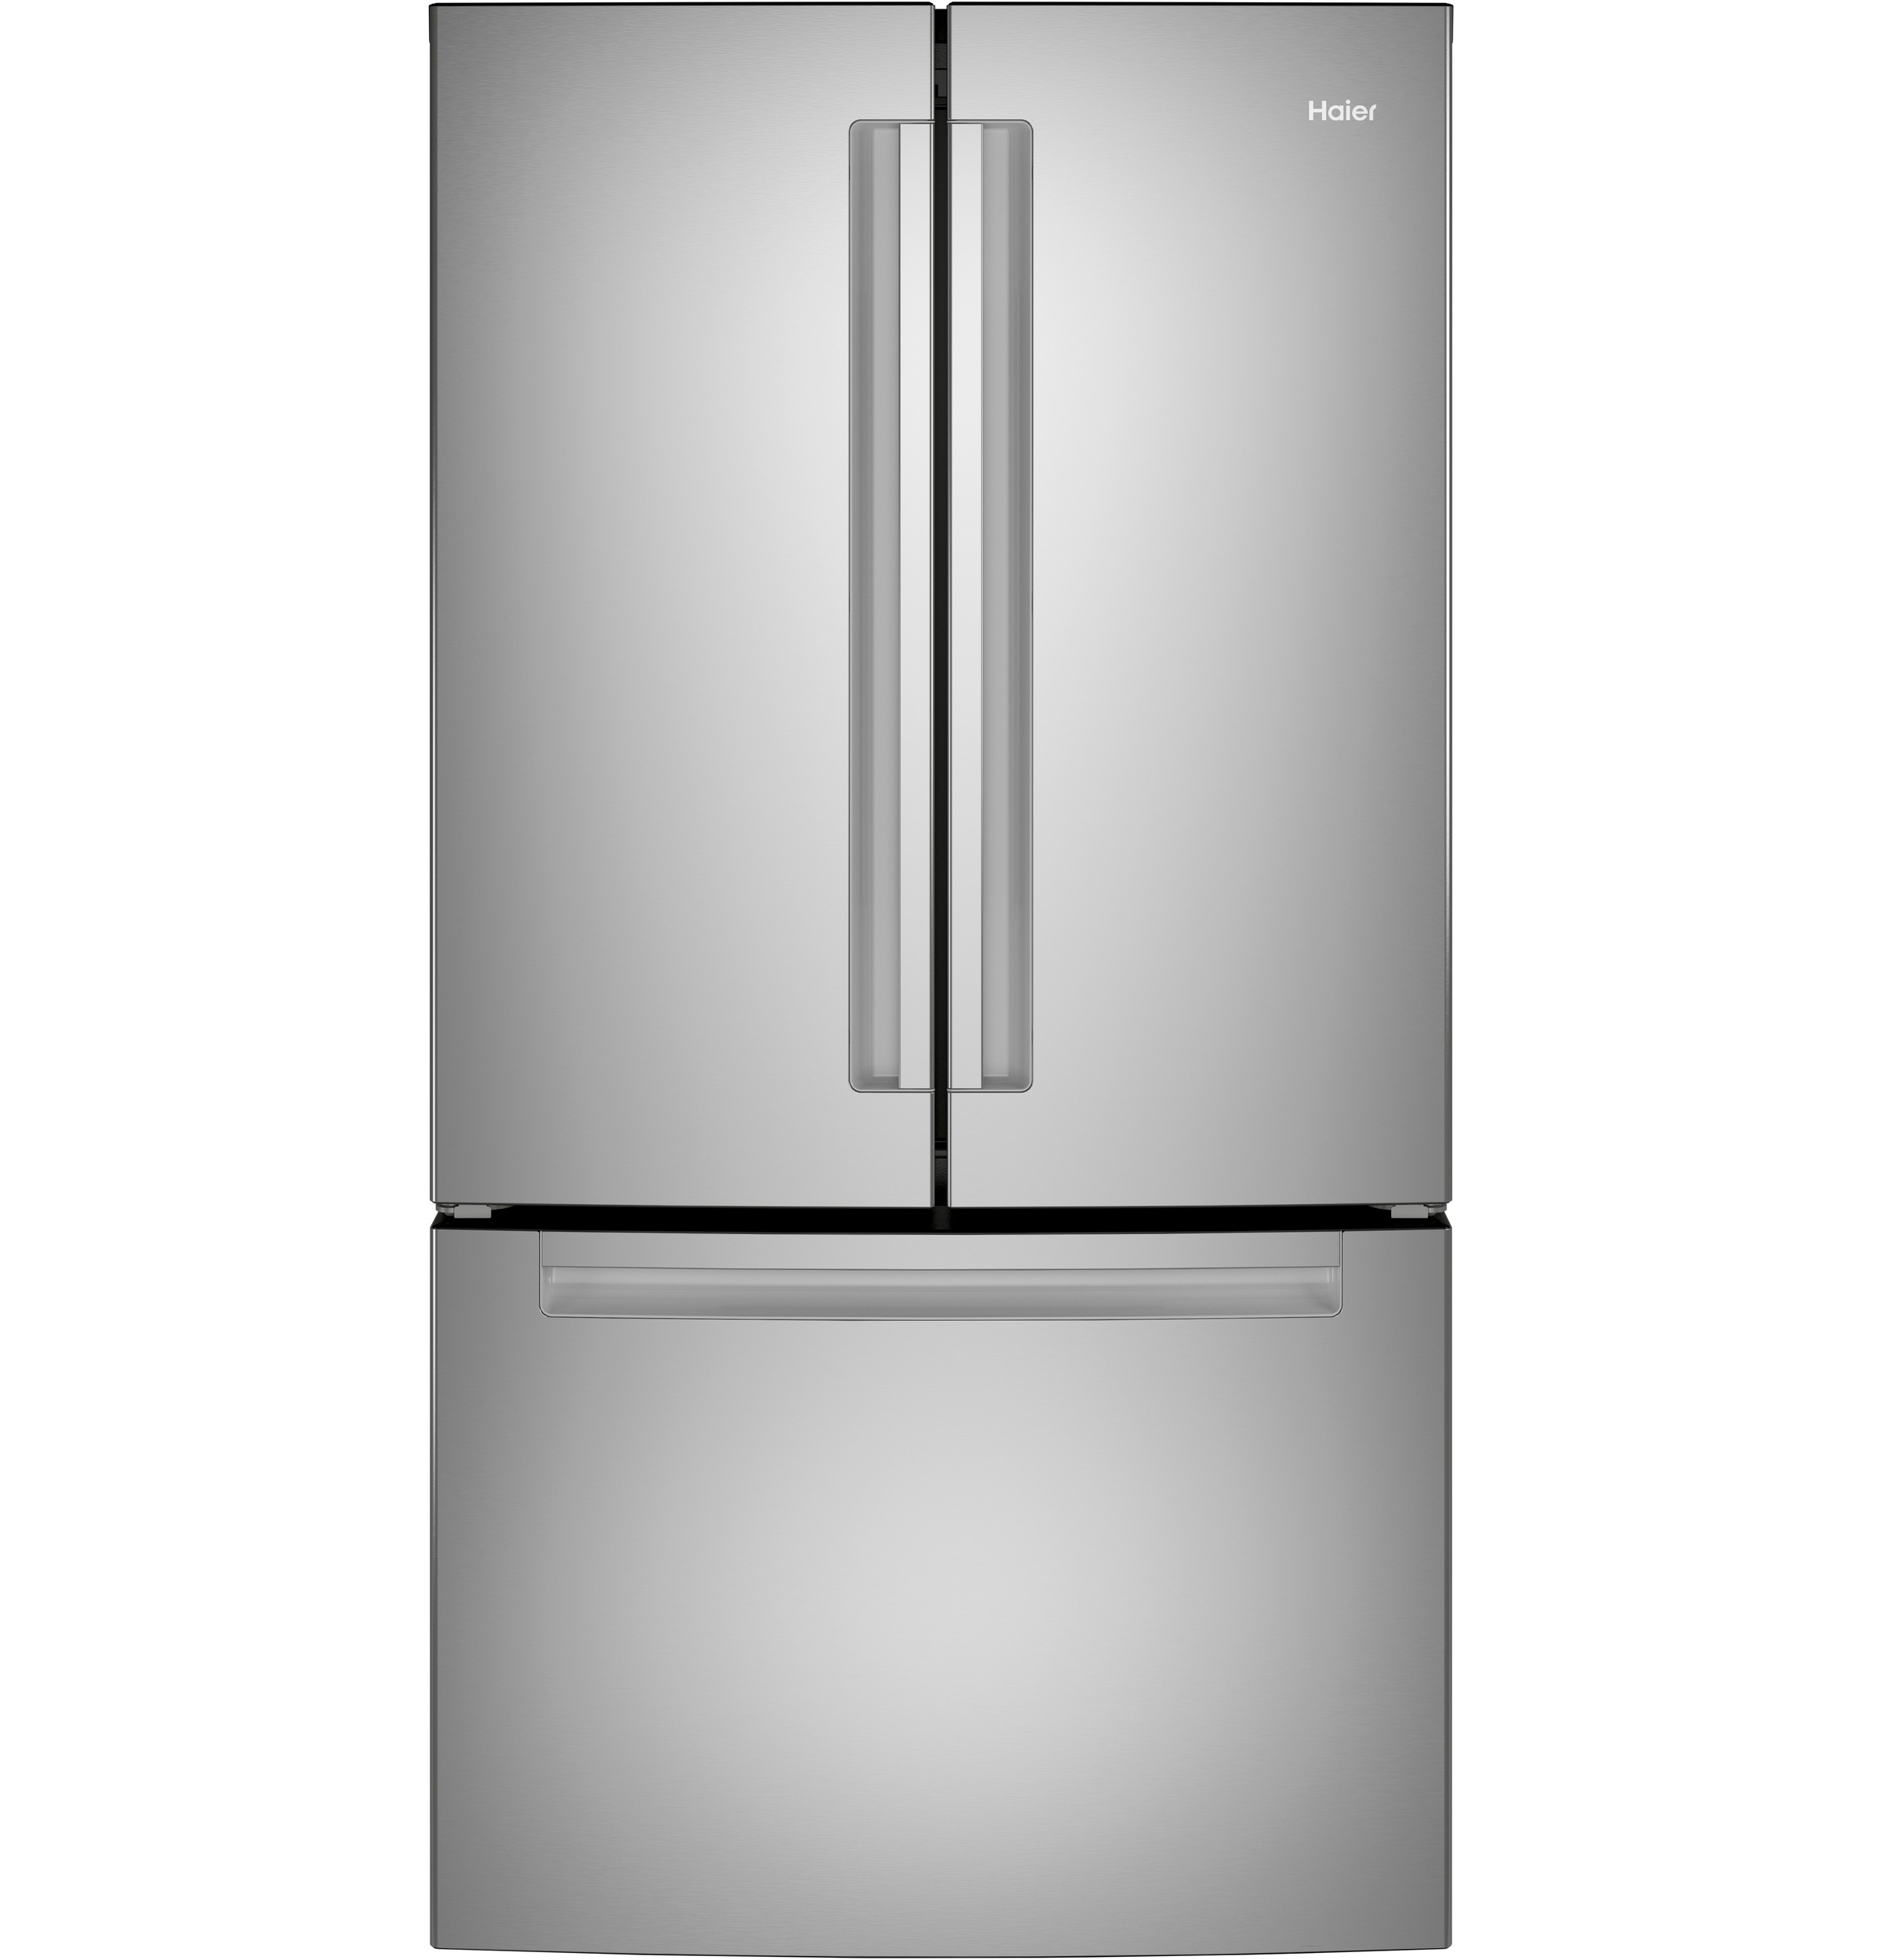 Haier ENERGY STAR® 27.0 Cu. Ft. French-Door Refrigerator